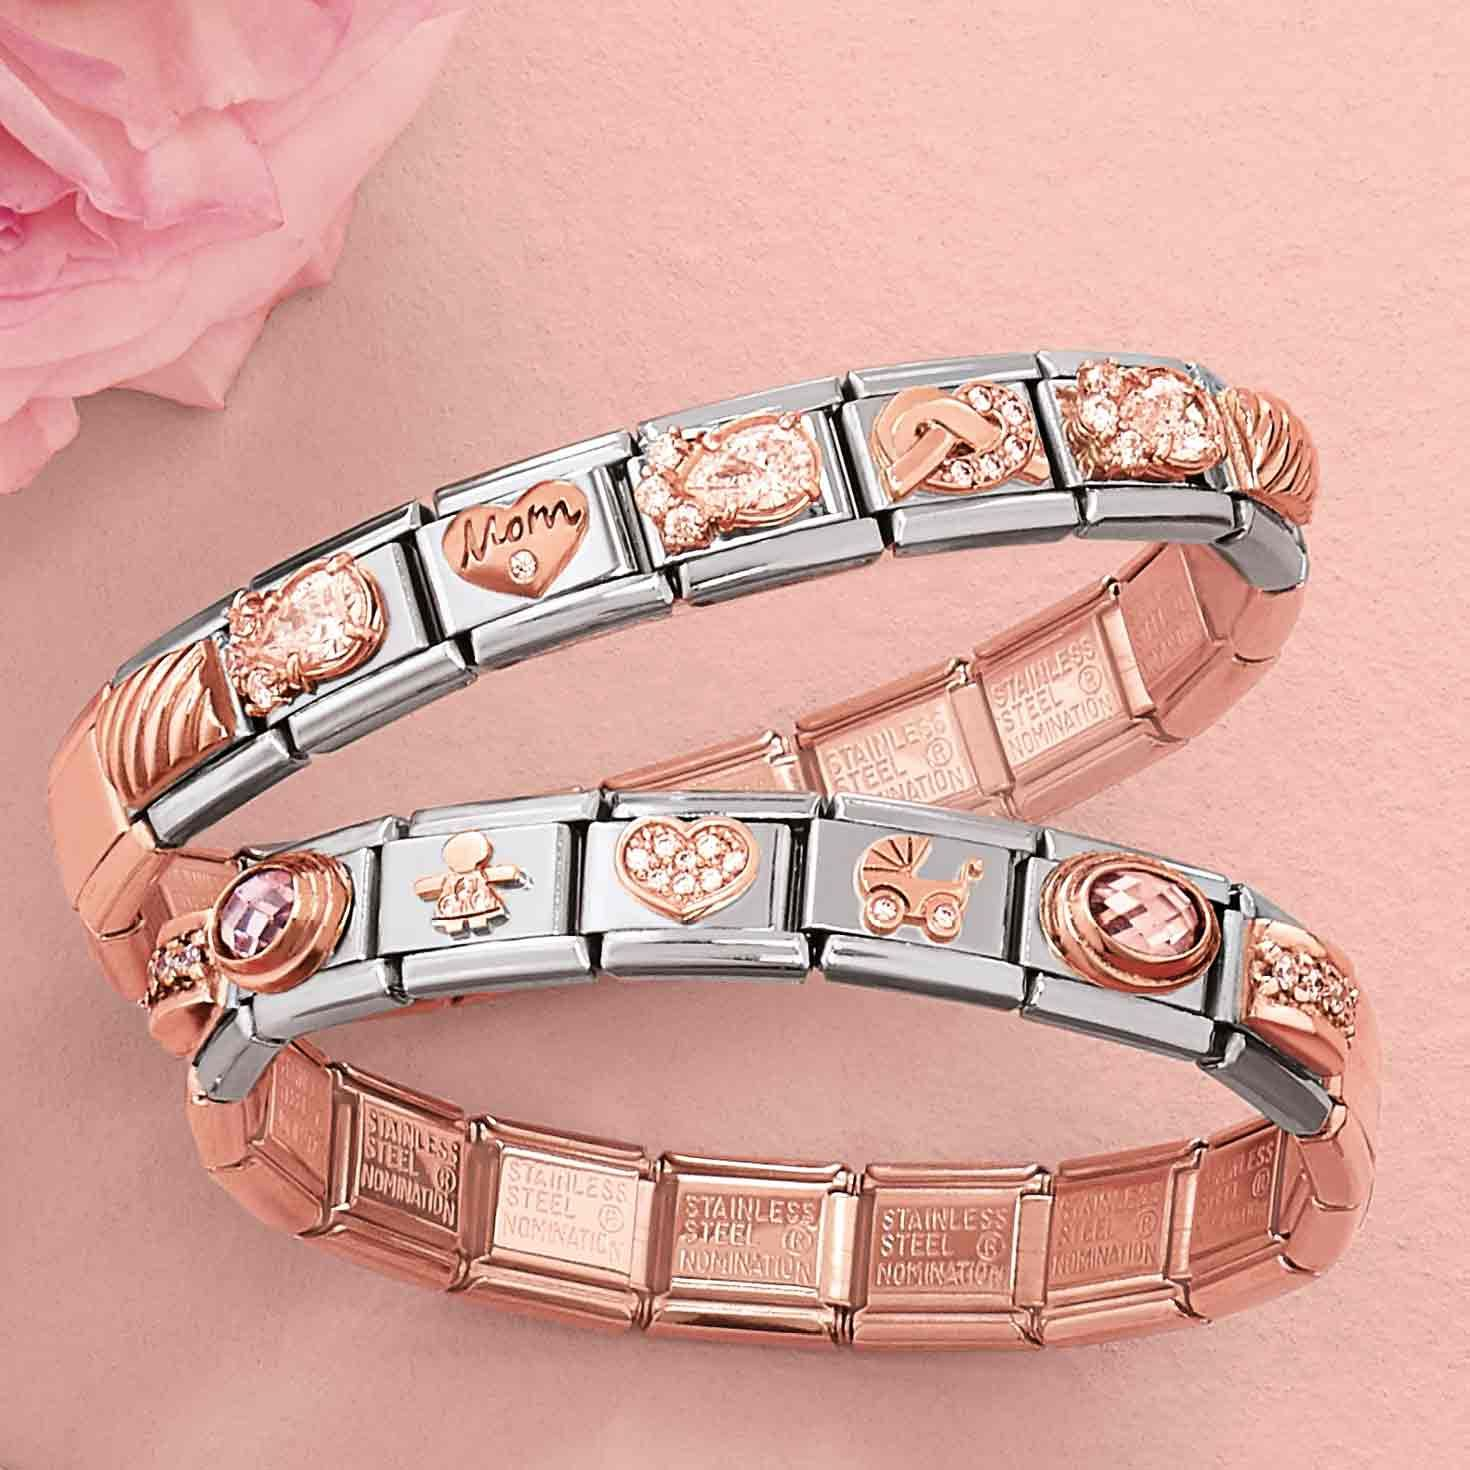 Nomination Bracelet Charms: Nomination Italy #composable